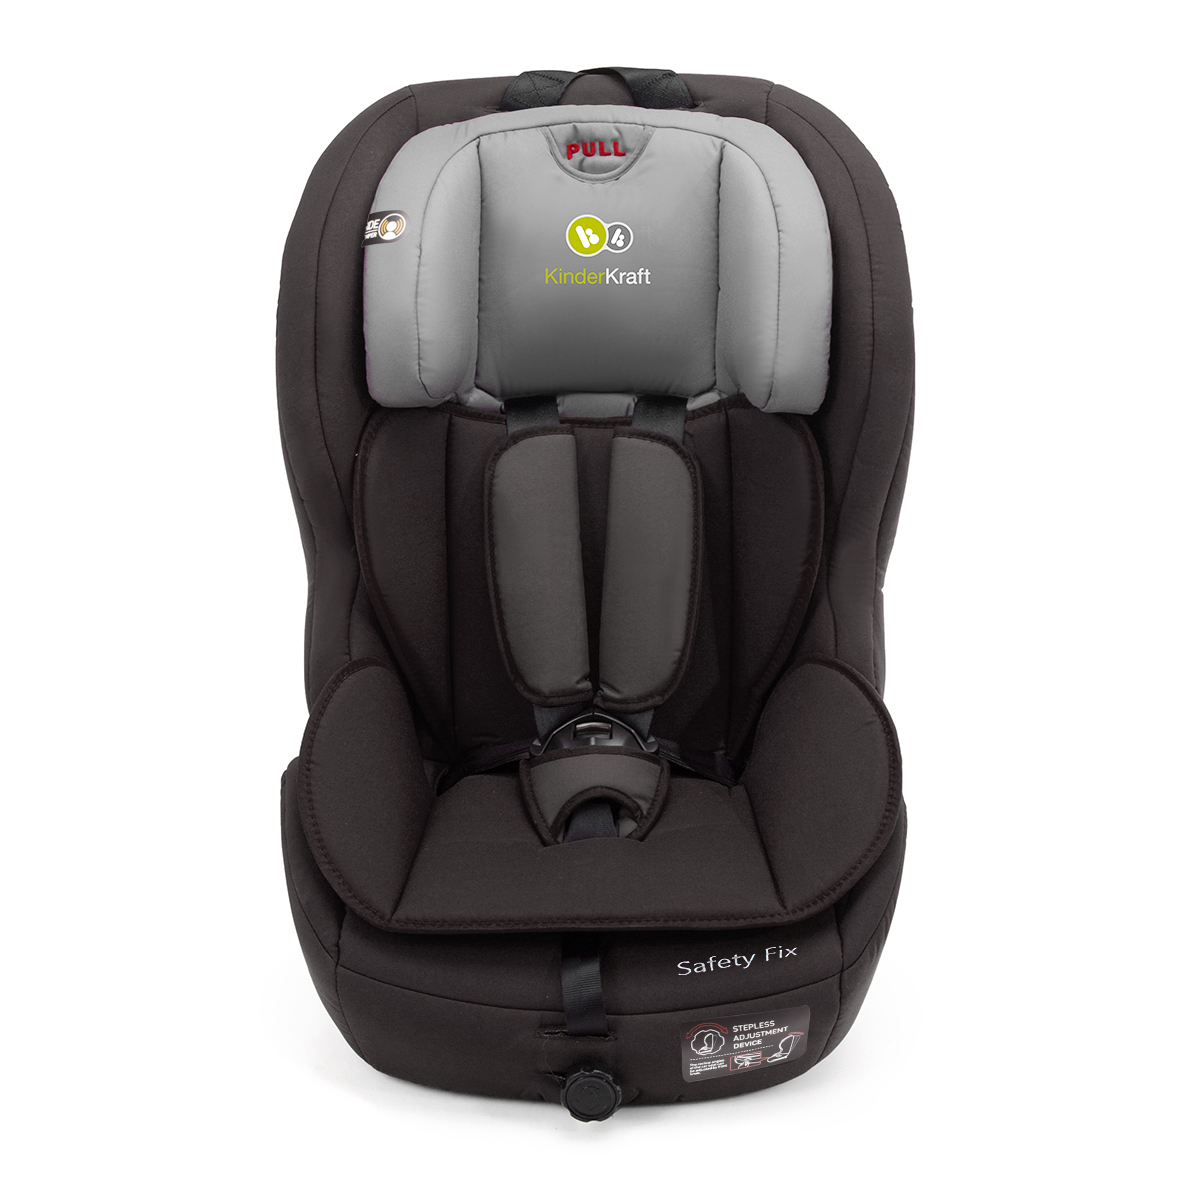 Kinderkraft Safety Fix Car Seat Reviews